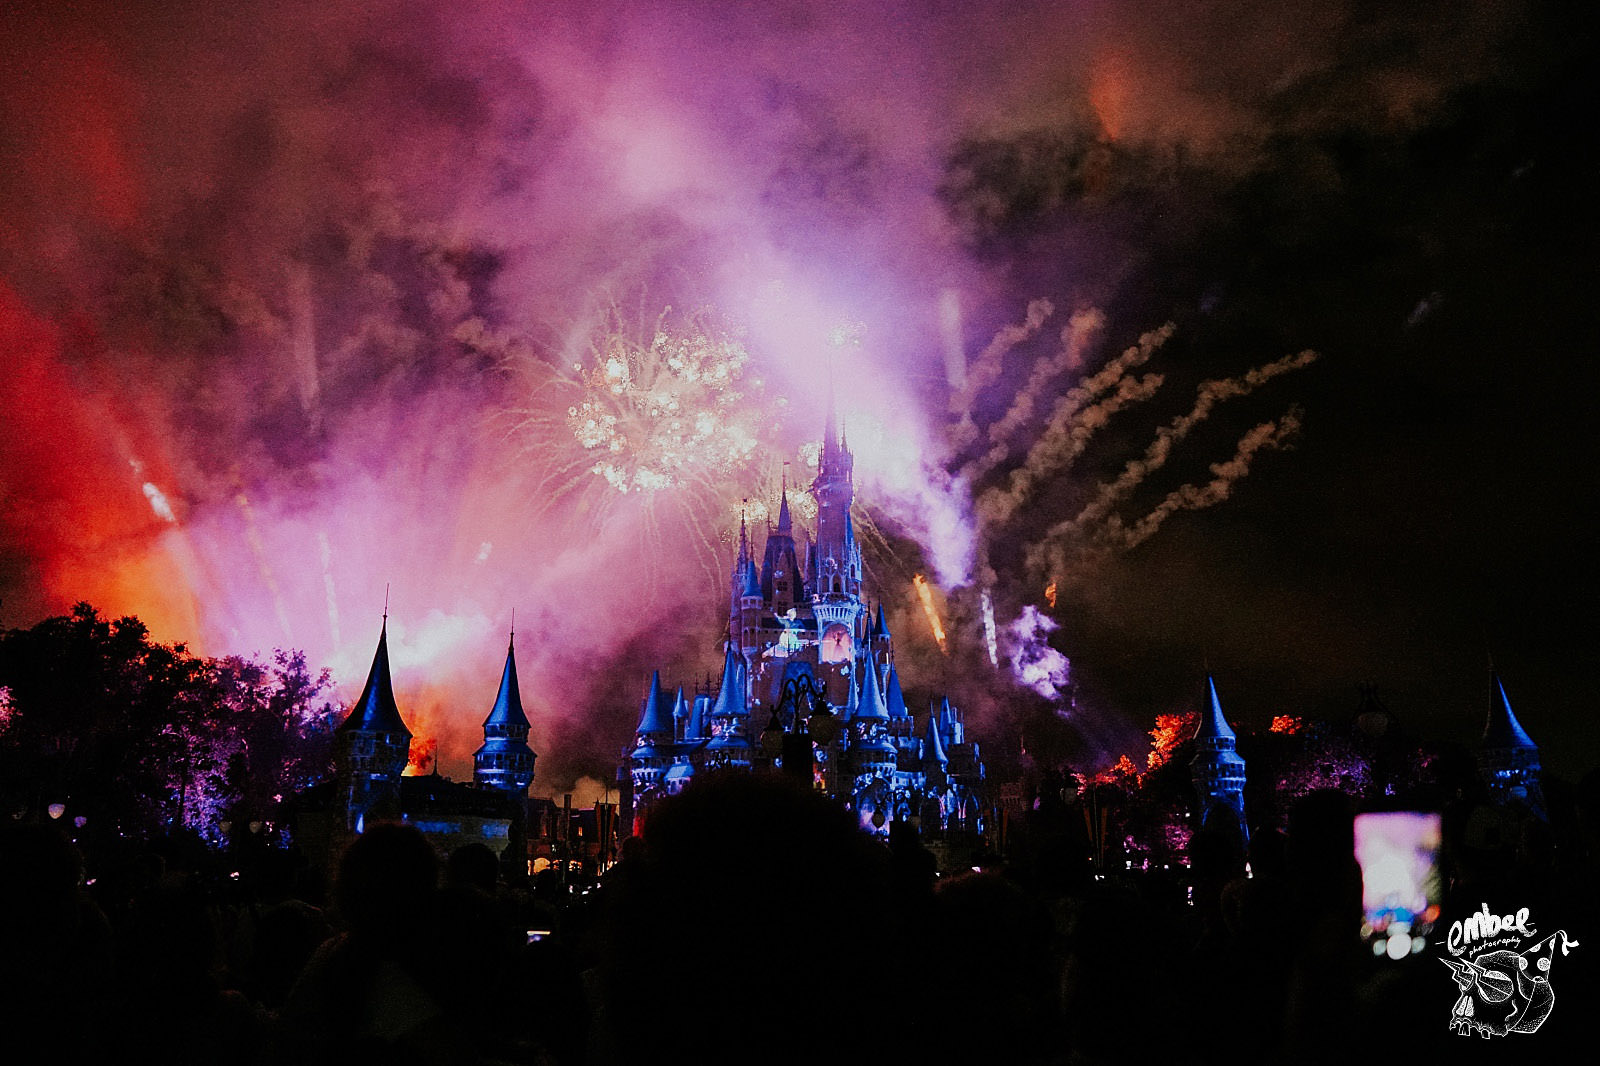 the magic kingdom castle fireworks show at night